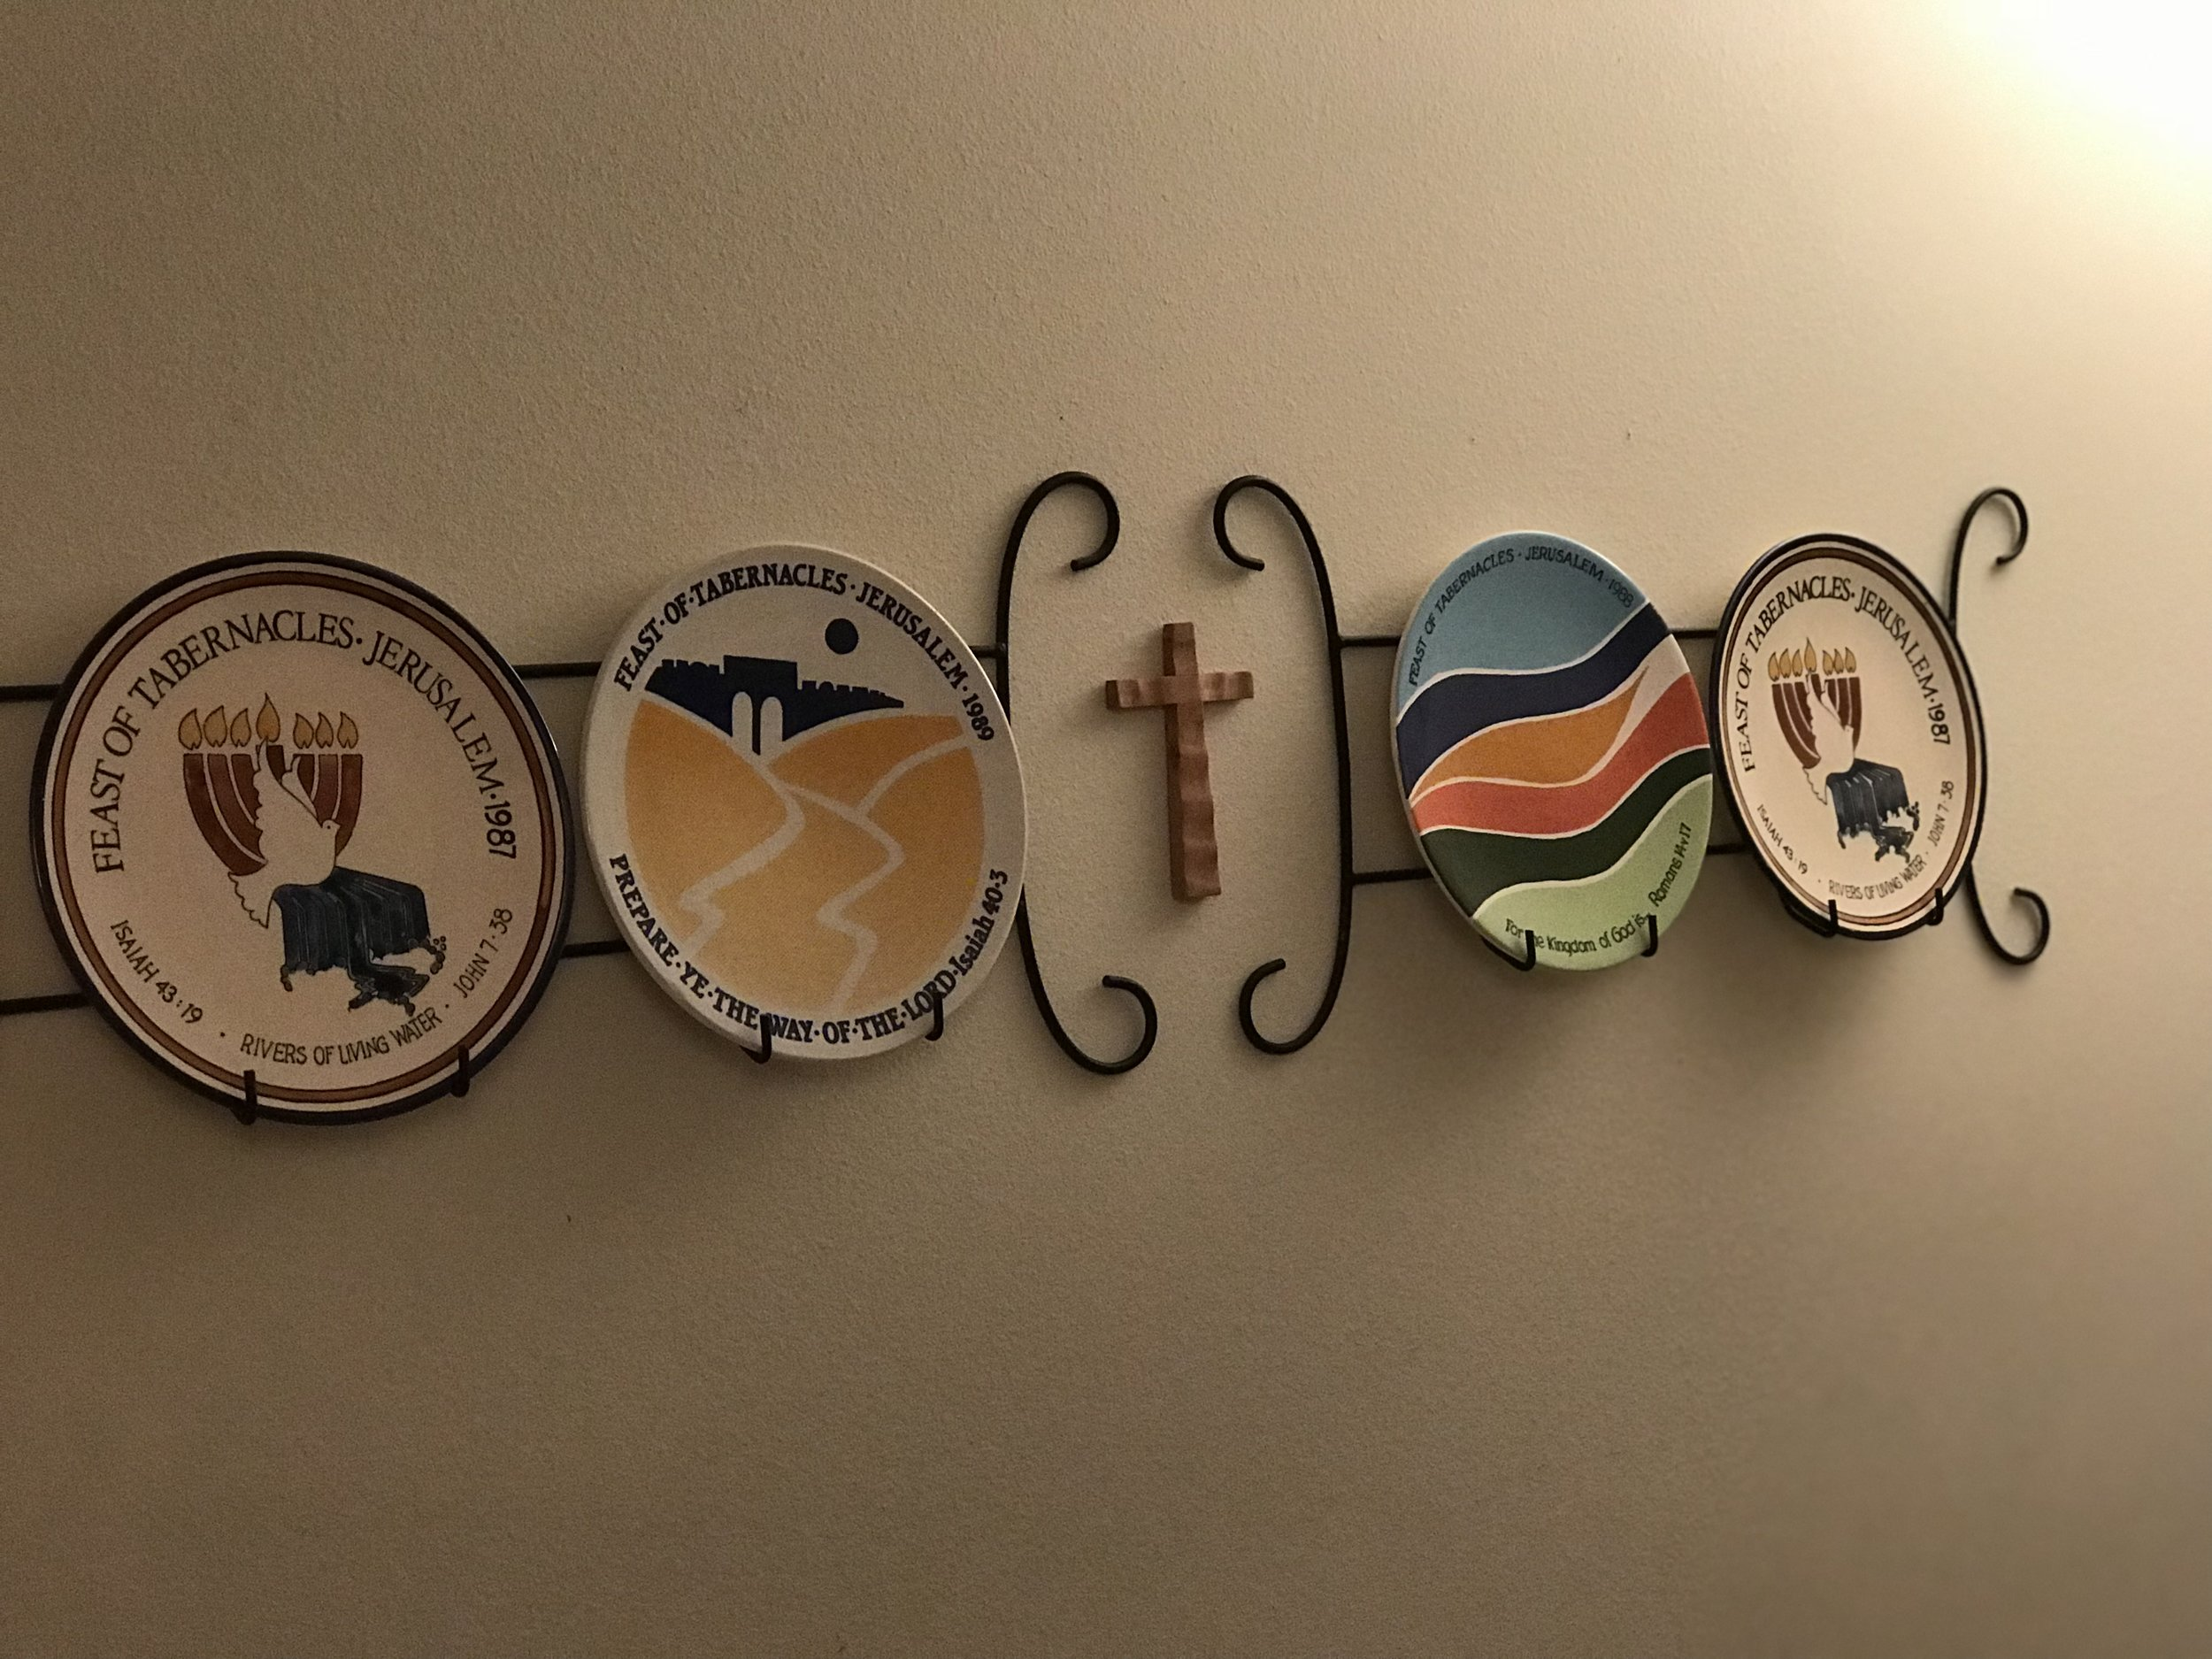 Decorative Plates from Israel